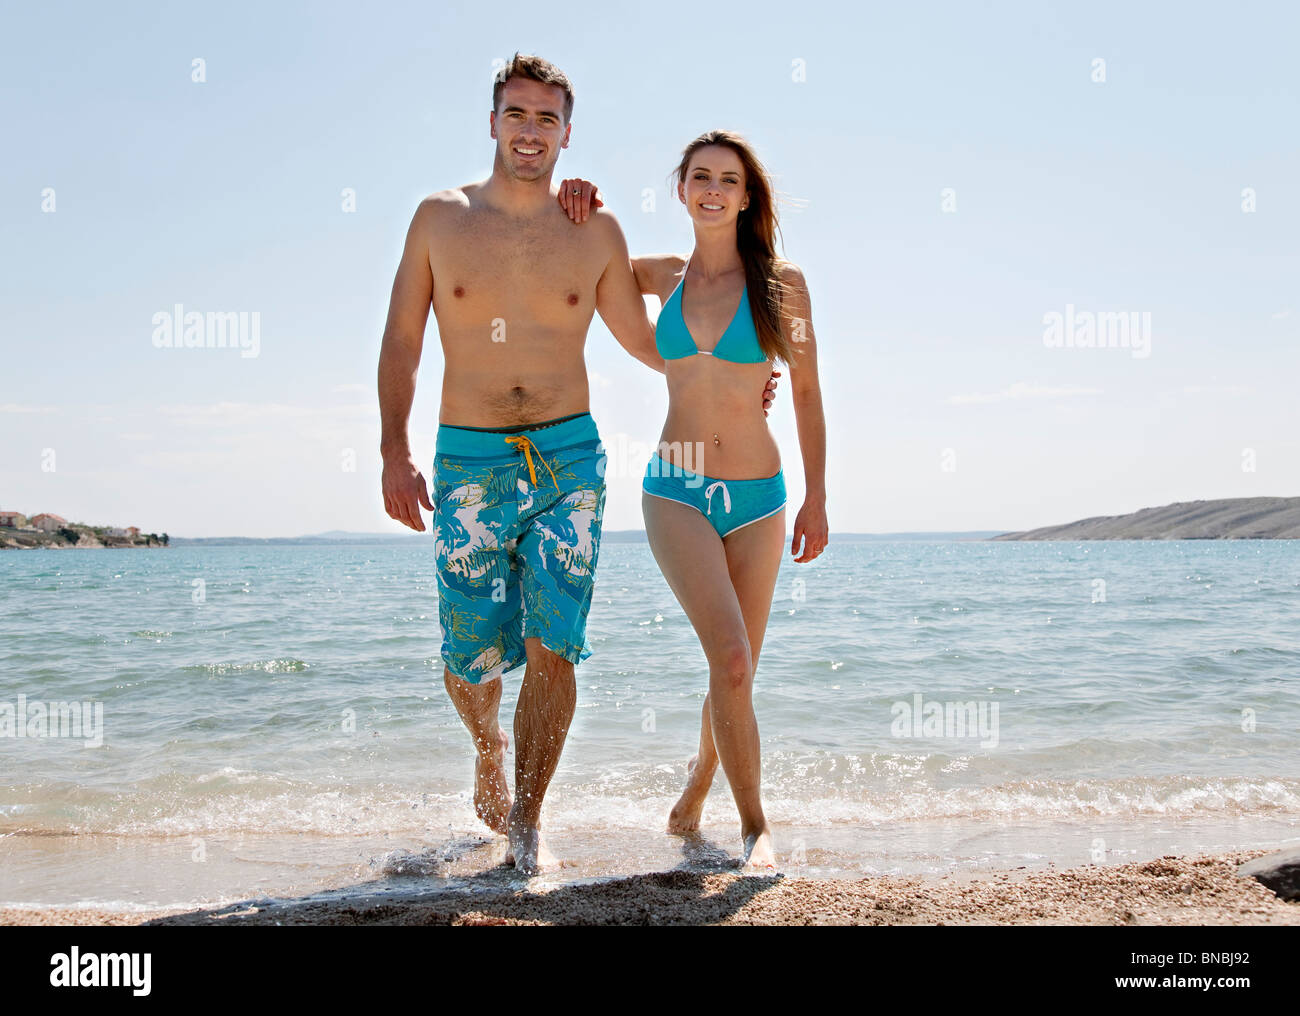 Couple coming out of water at beach - Stock Image